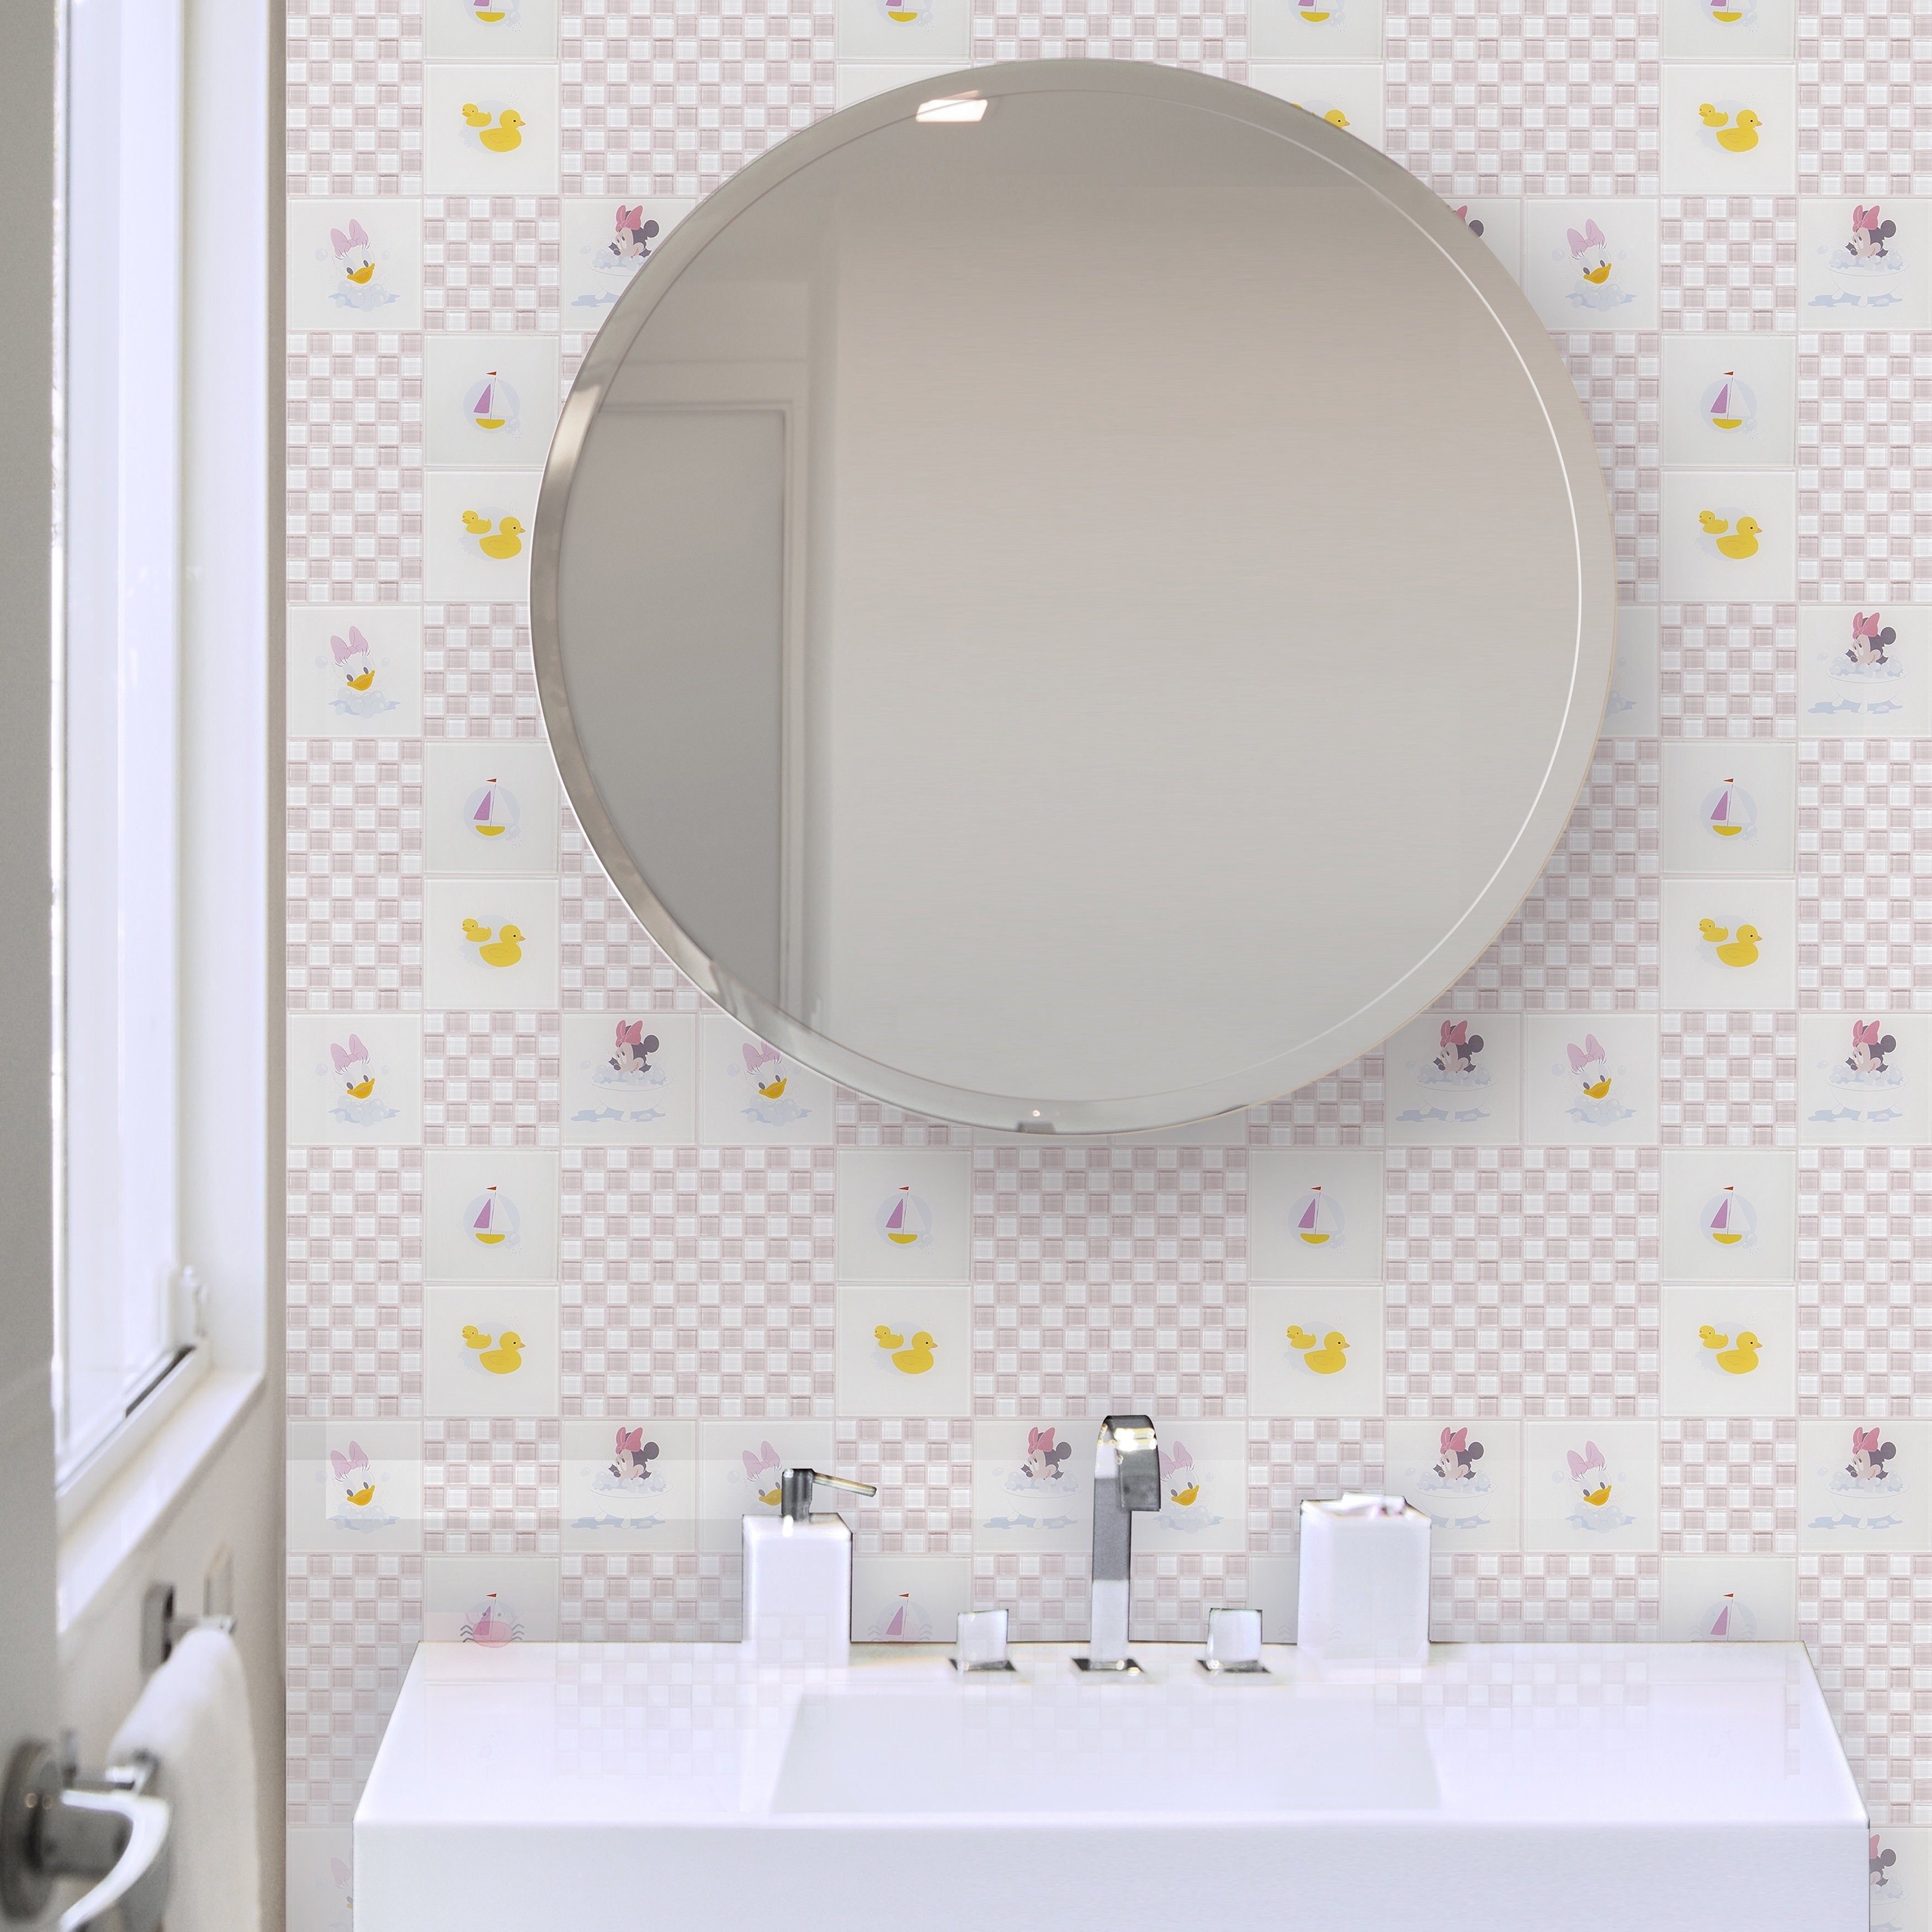 Disney 11.75x11.75-inch Baby Pink Glass Mosaic Wall Tile - Free ...